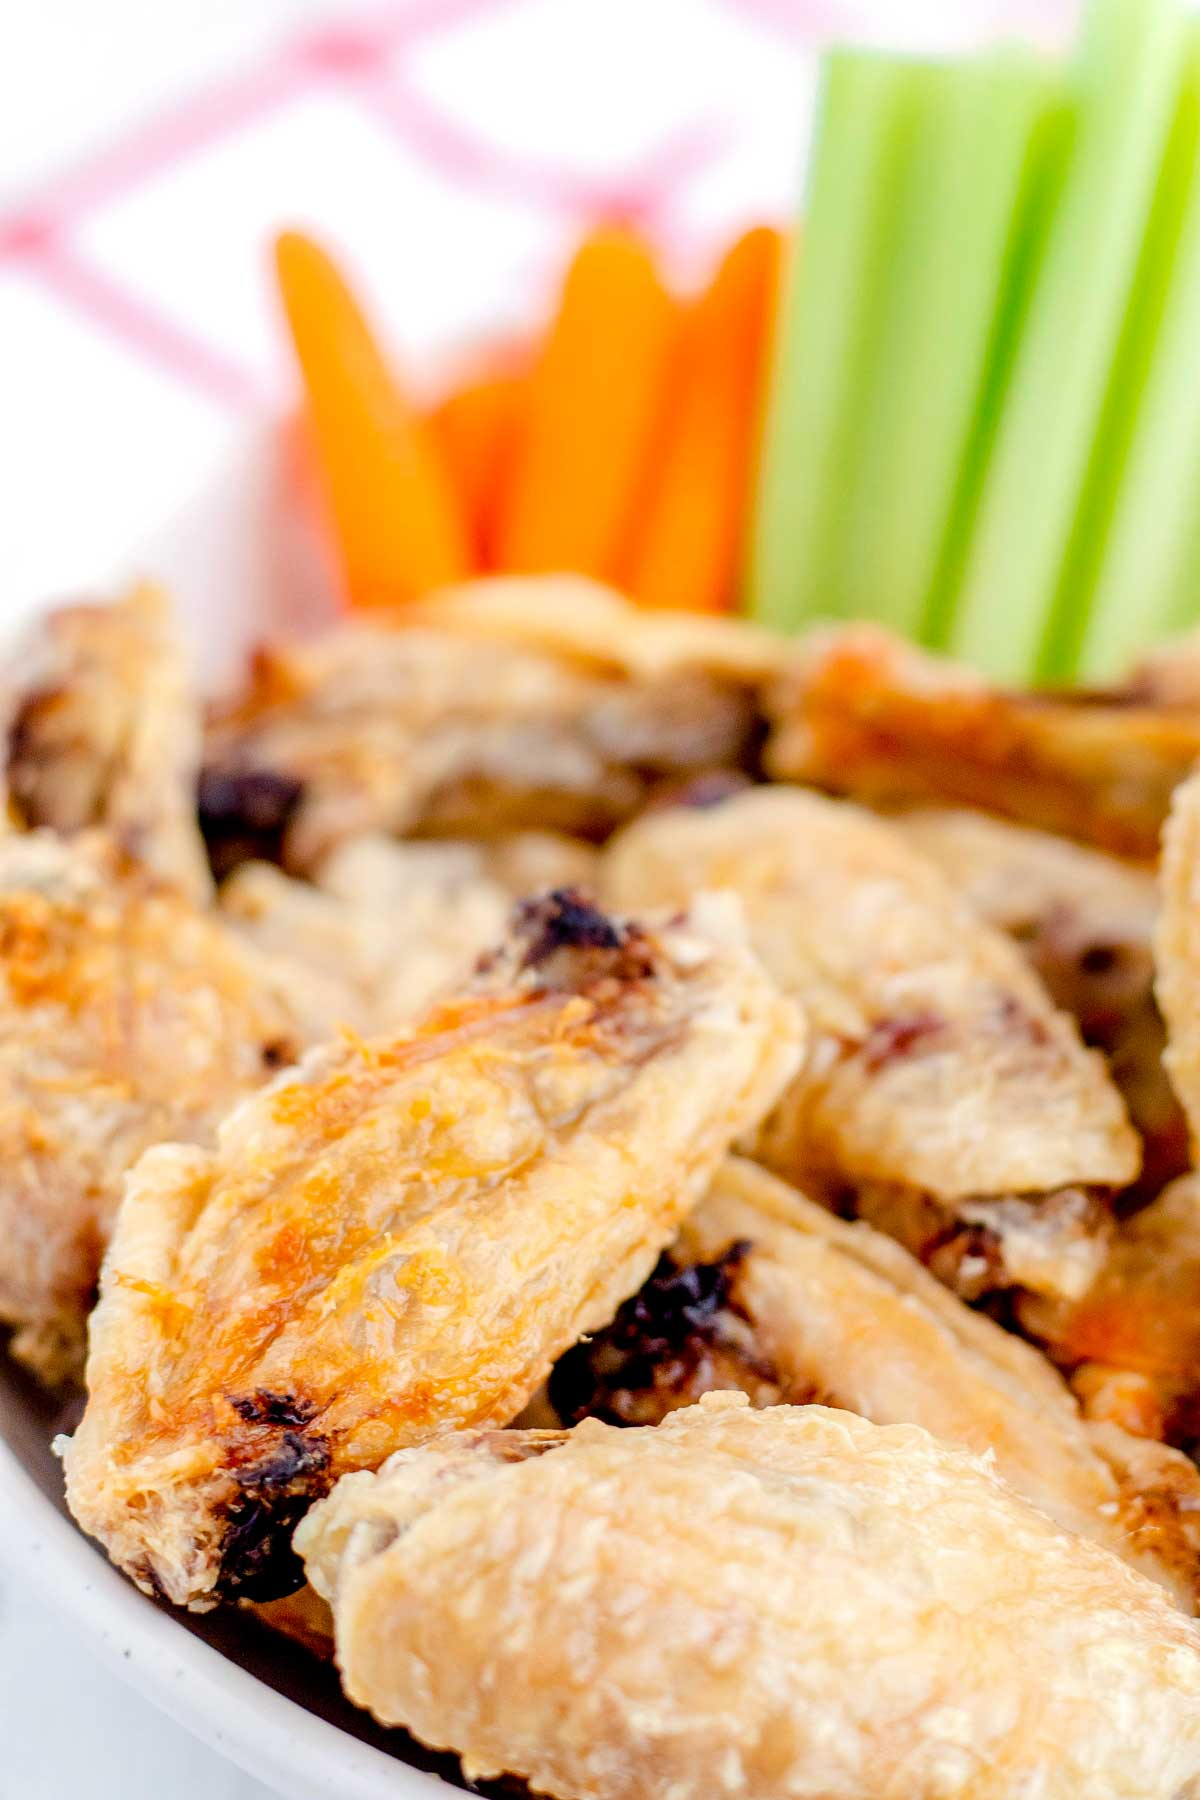 Baked Chicken Wings served without sauce.